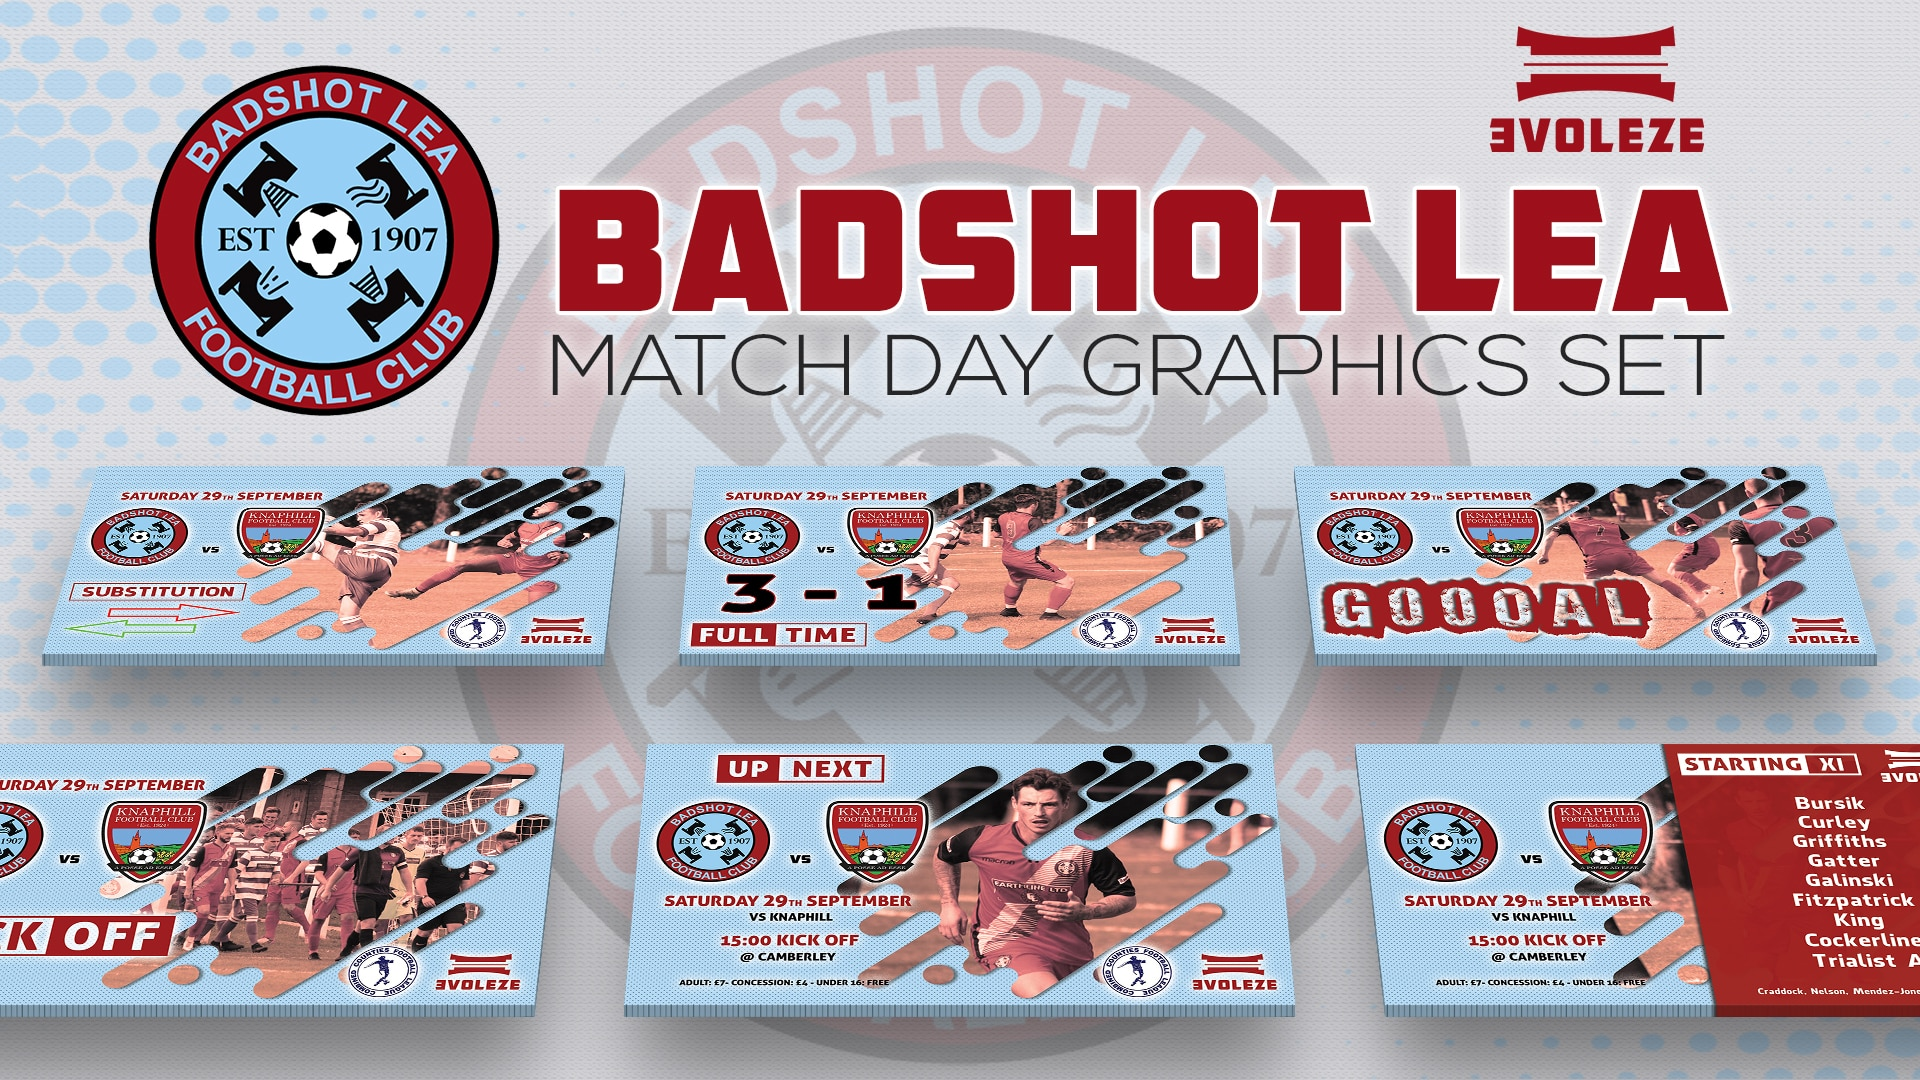 Badshot Lea FC match day graphics set